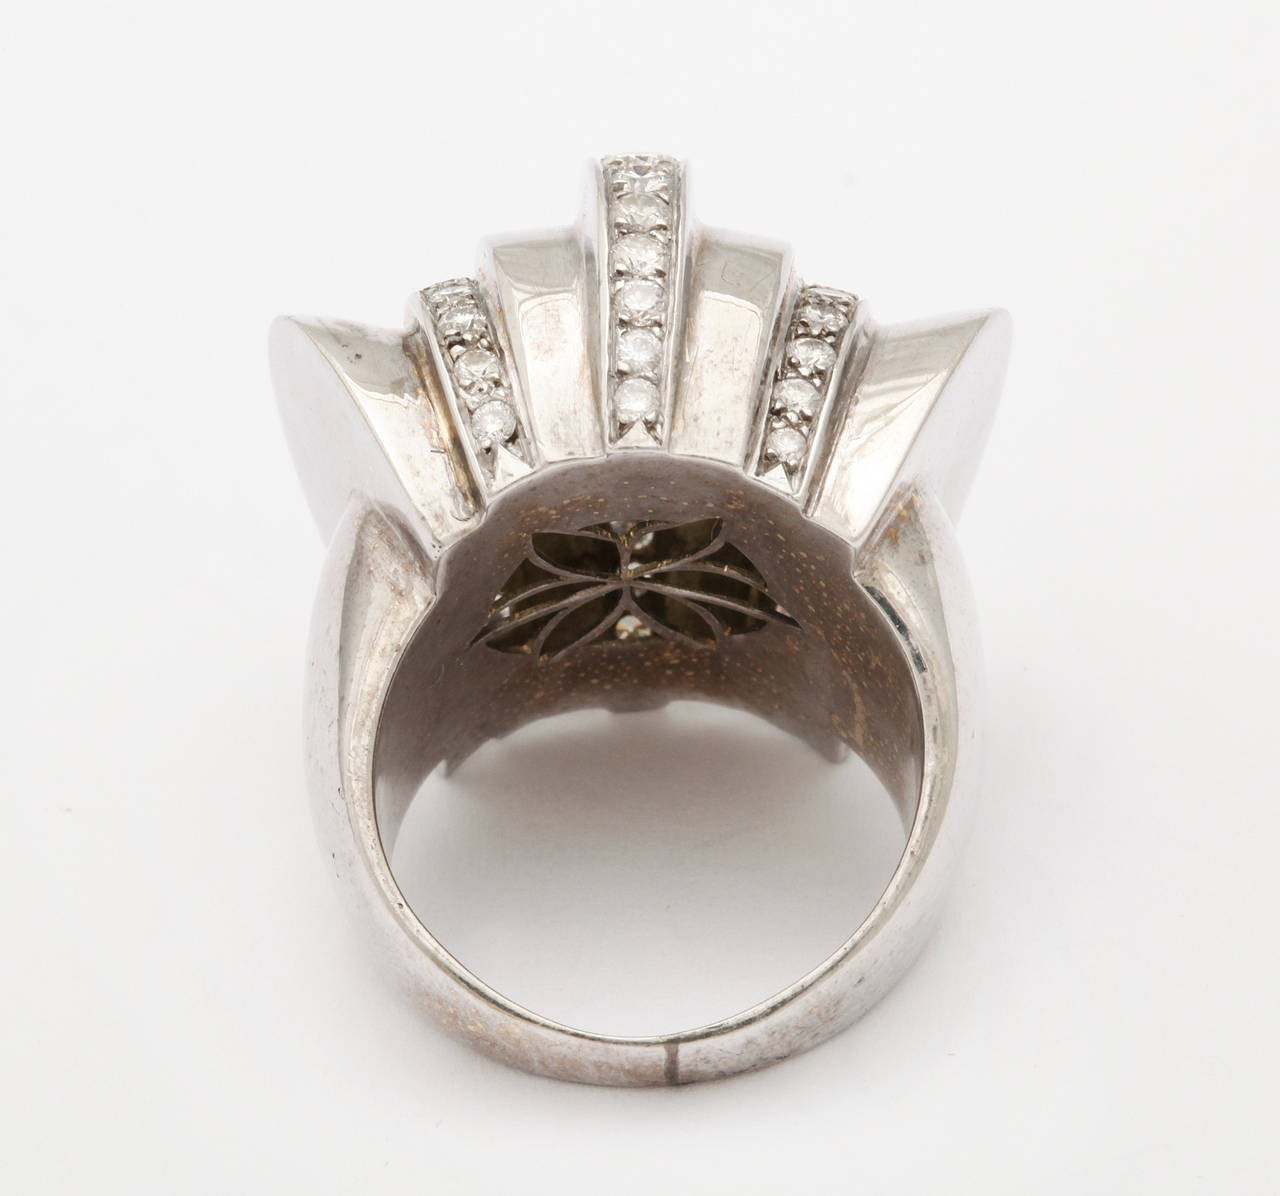 1940s Retro Diamond Gold Cocktail Ring In Excellent Condition For Sale In New York, NY